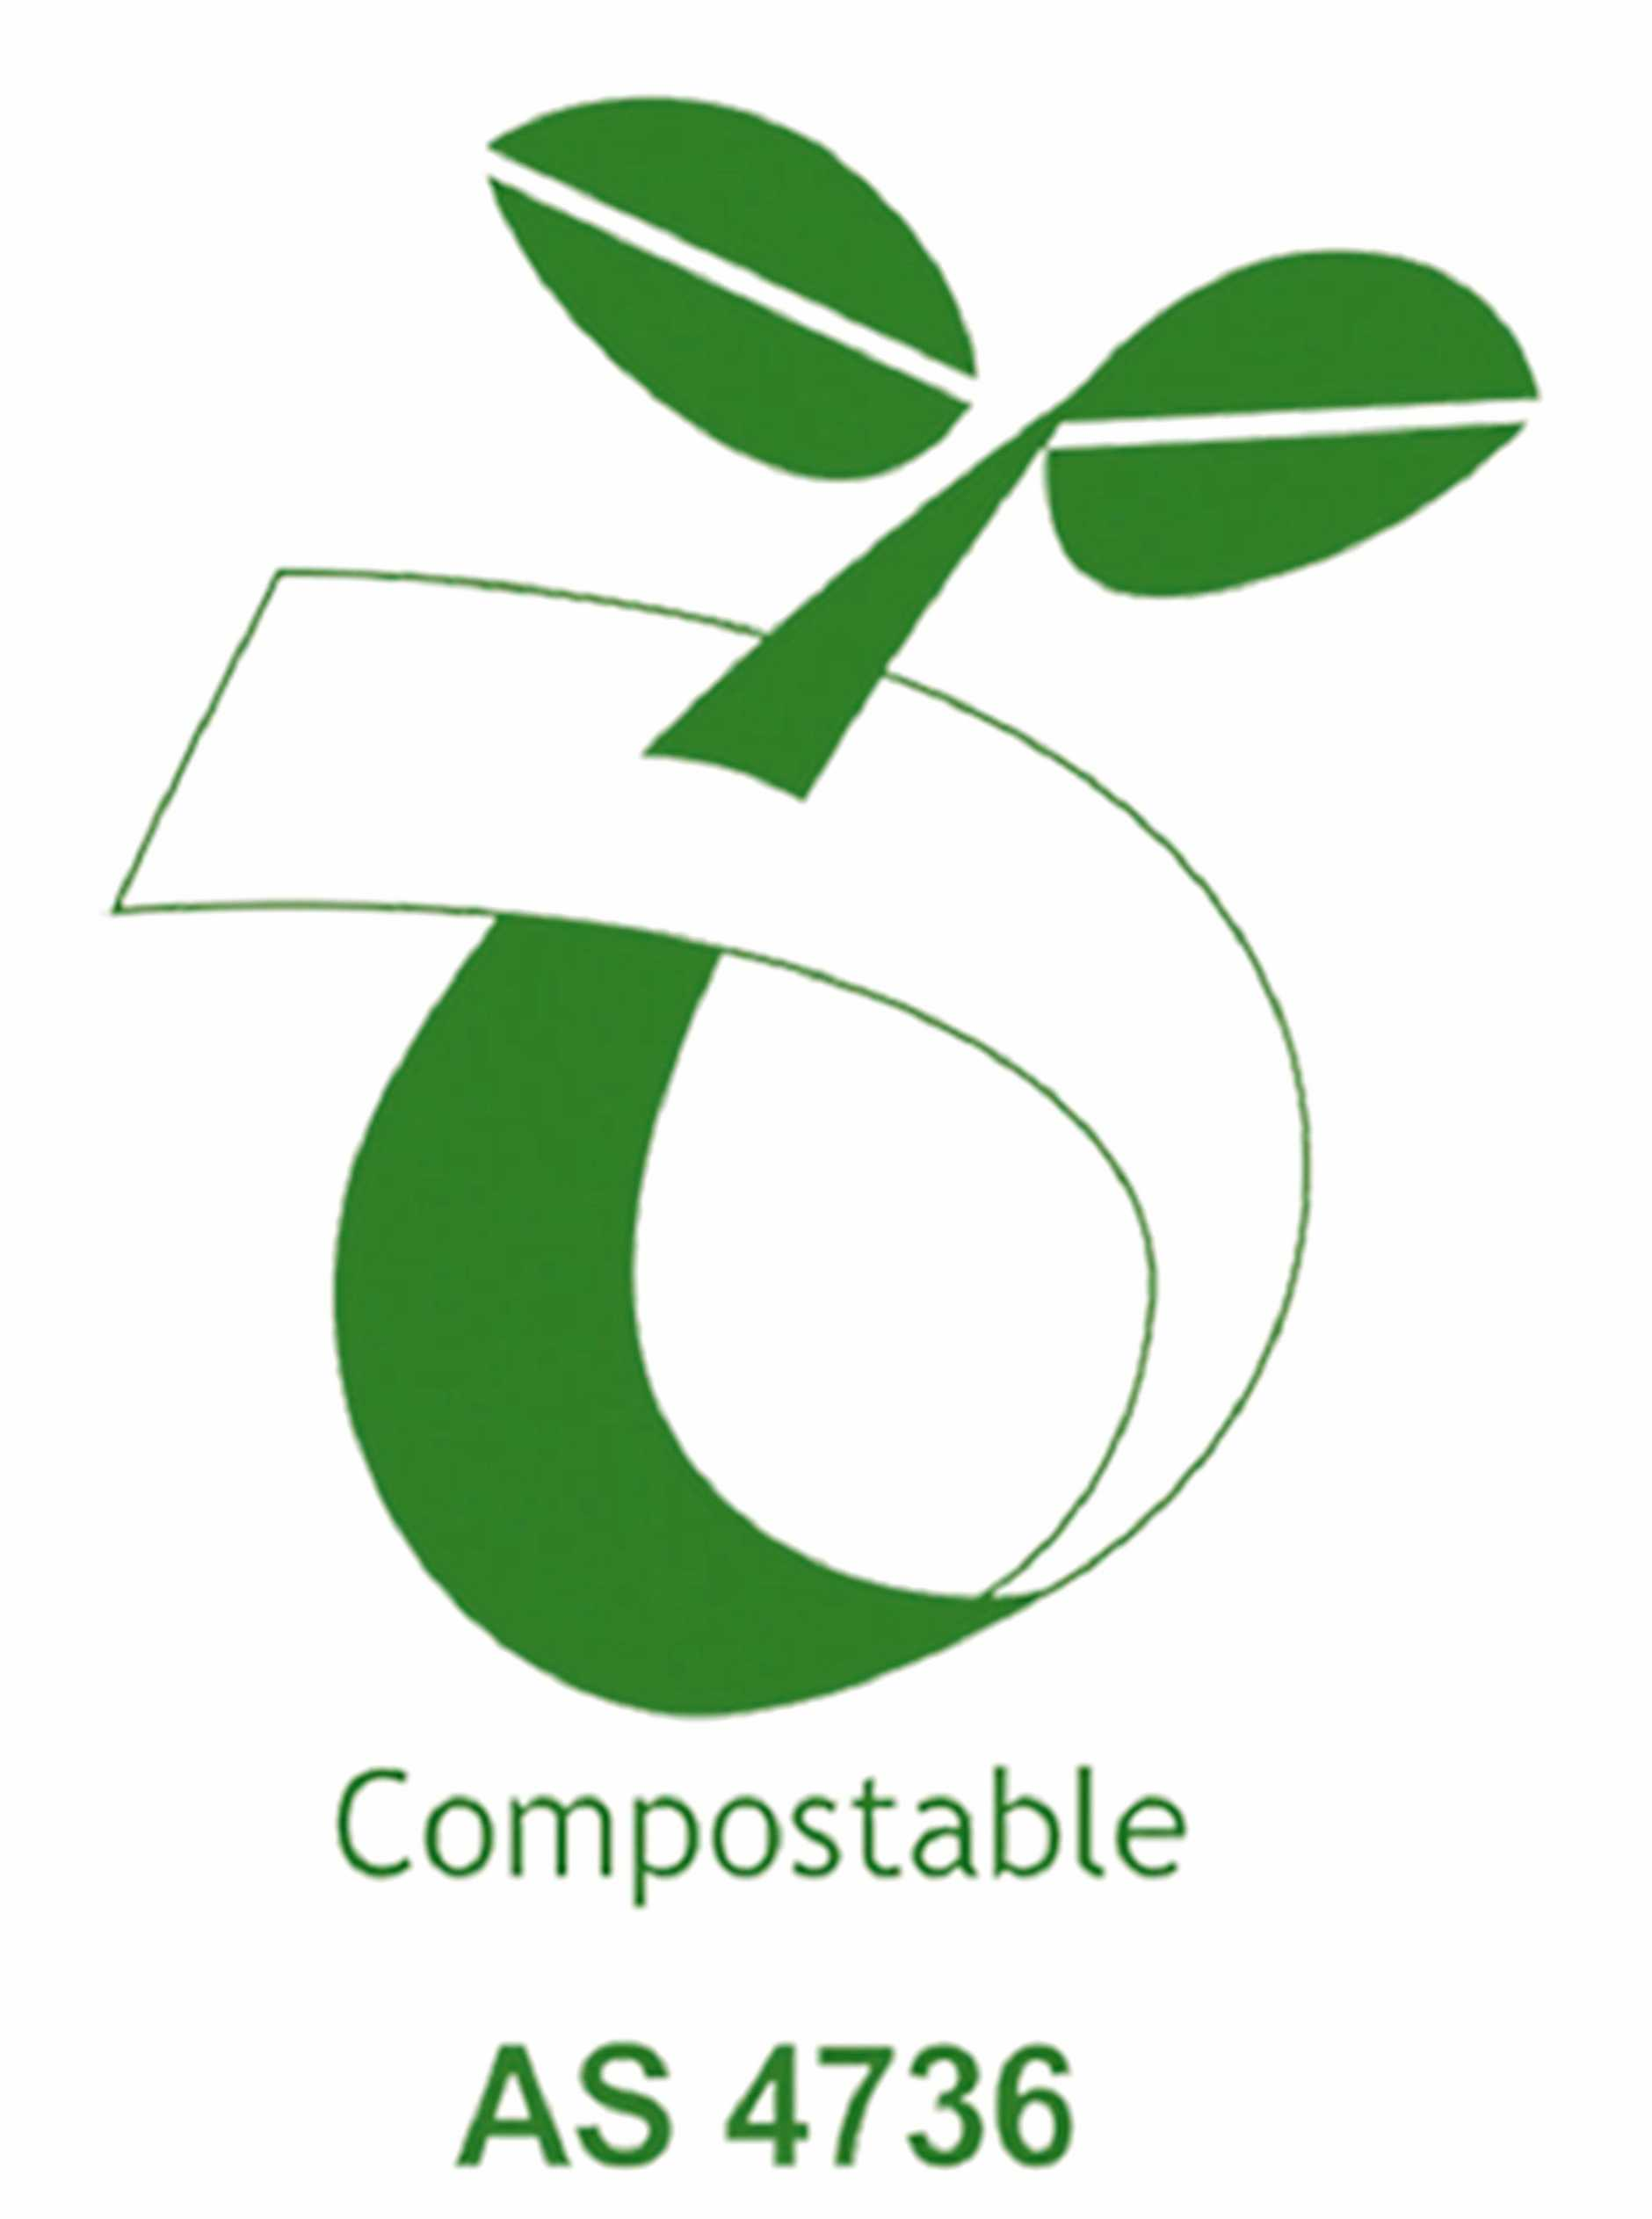 Only use bags with this compostable logo in your compost bin.